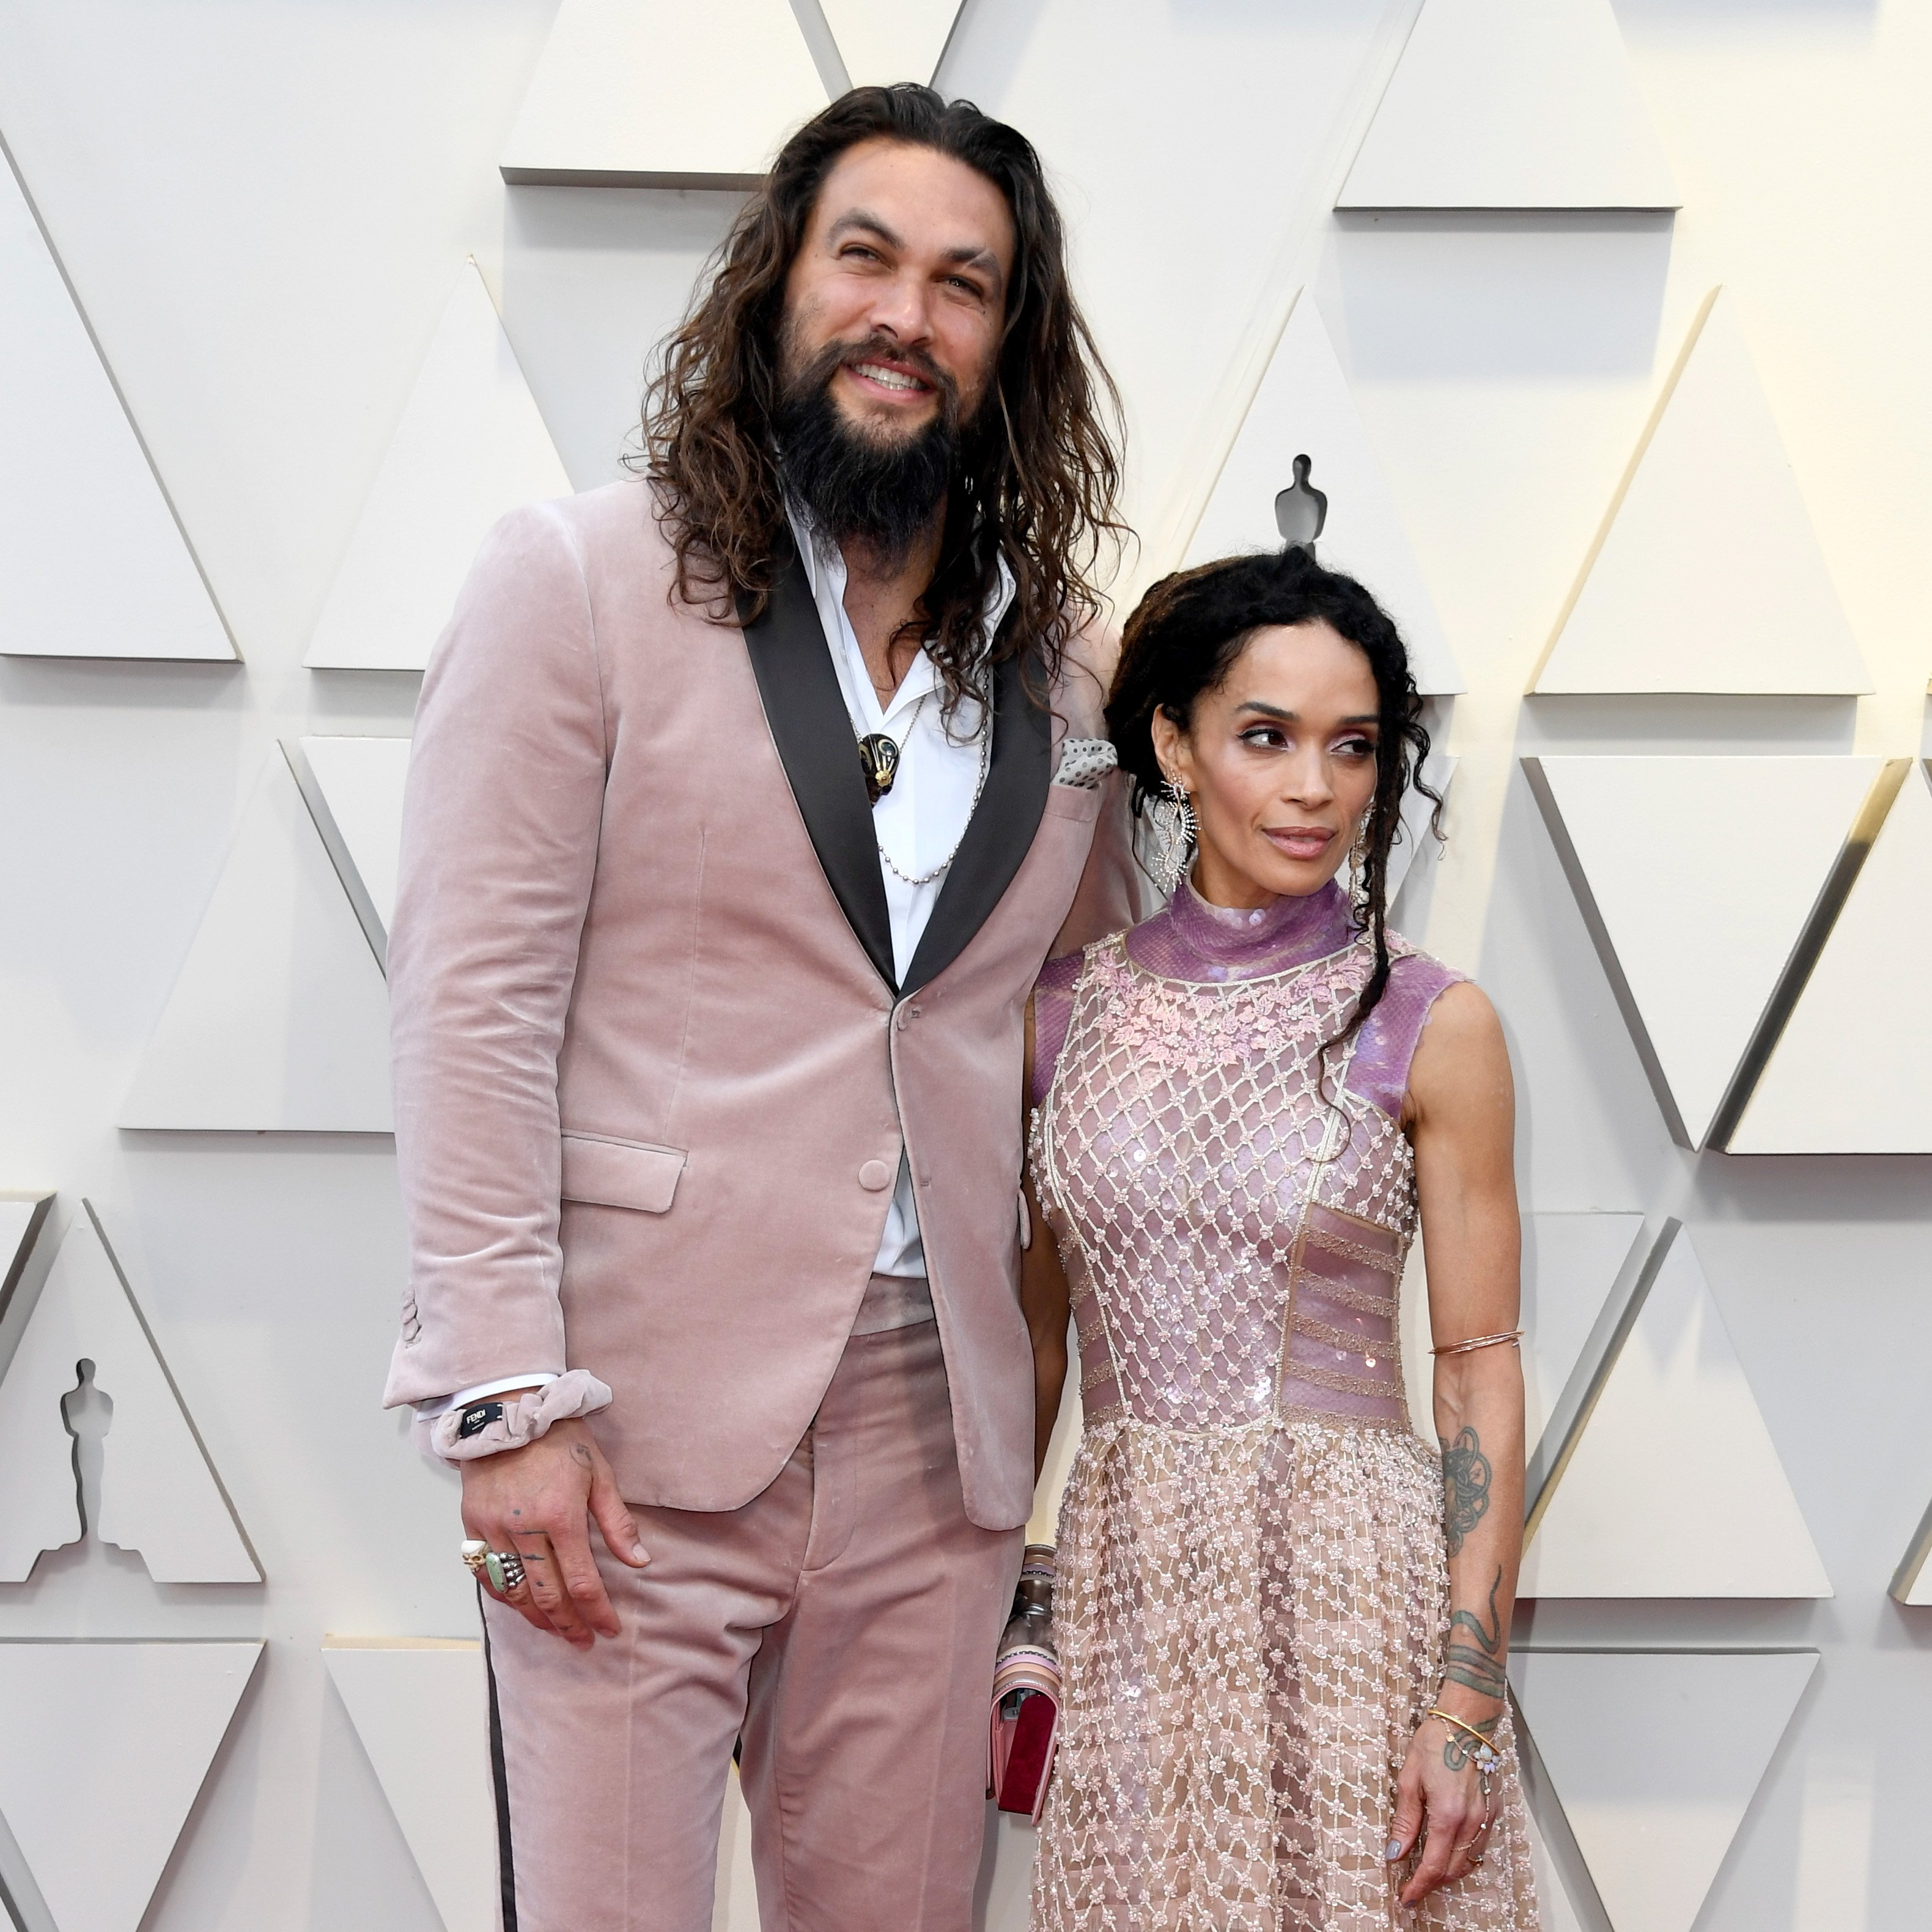 Jason Momoa and wife Lisa Bonet attend the 2019 Oscars | Photo: Getty Images